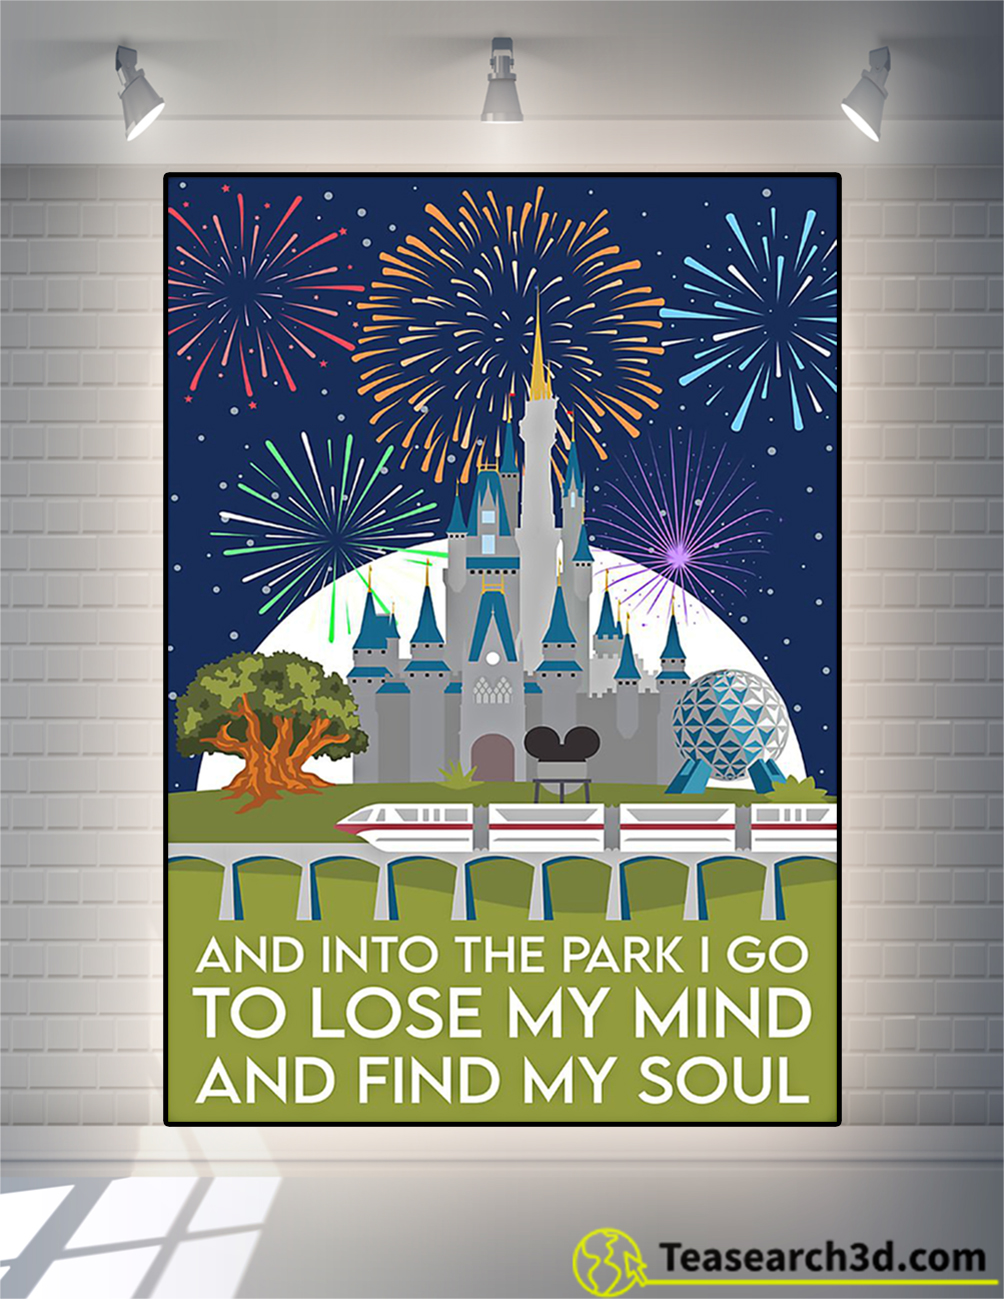 And into the park I go to lose my mind and find my soul poster